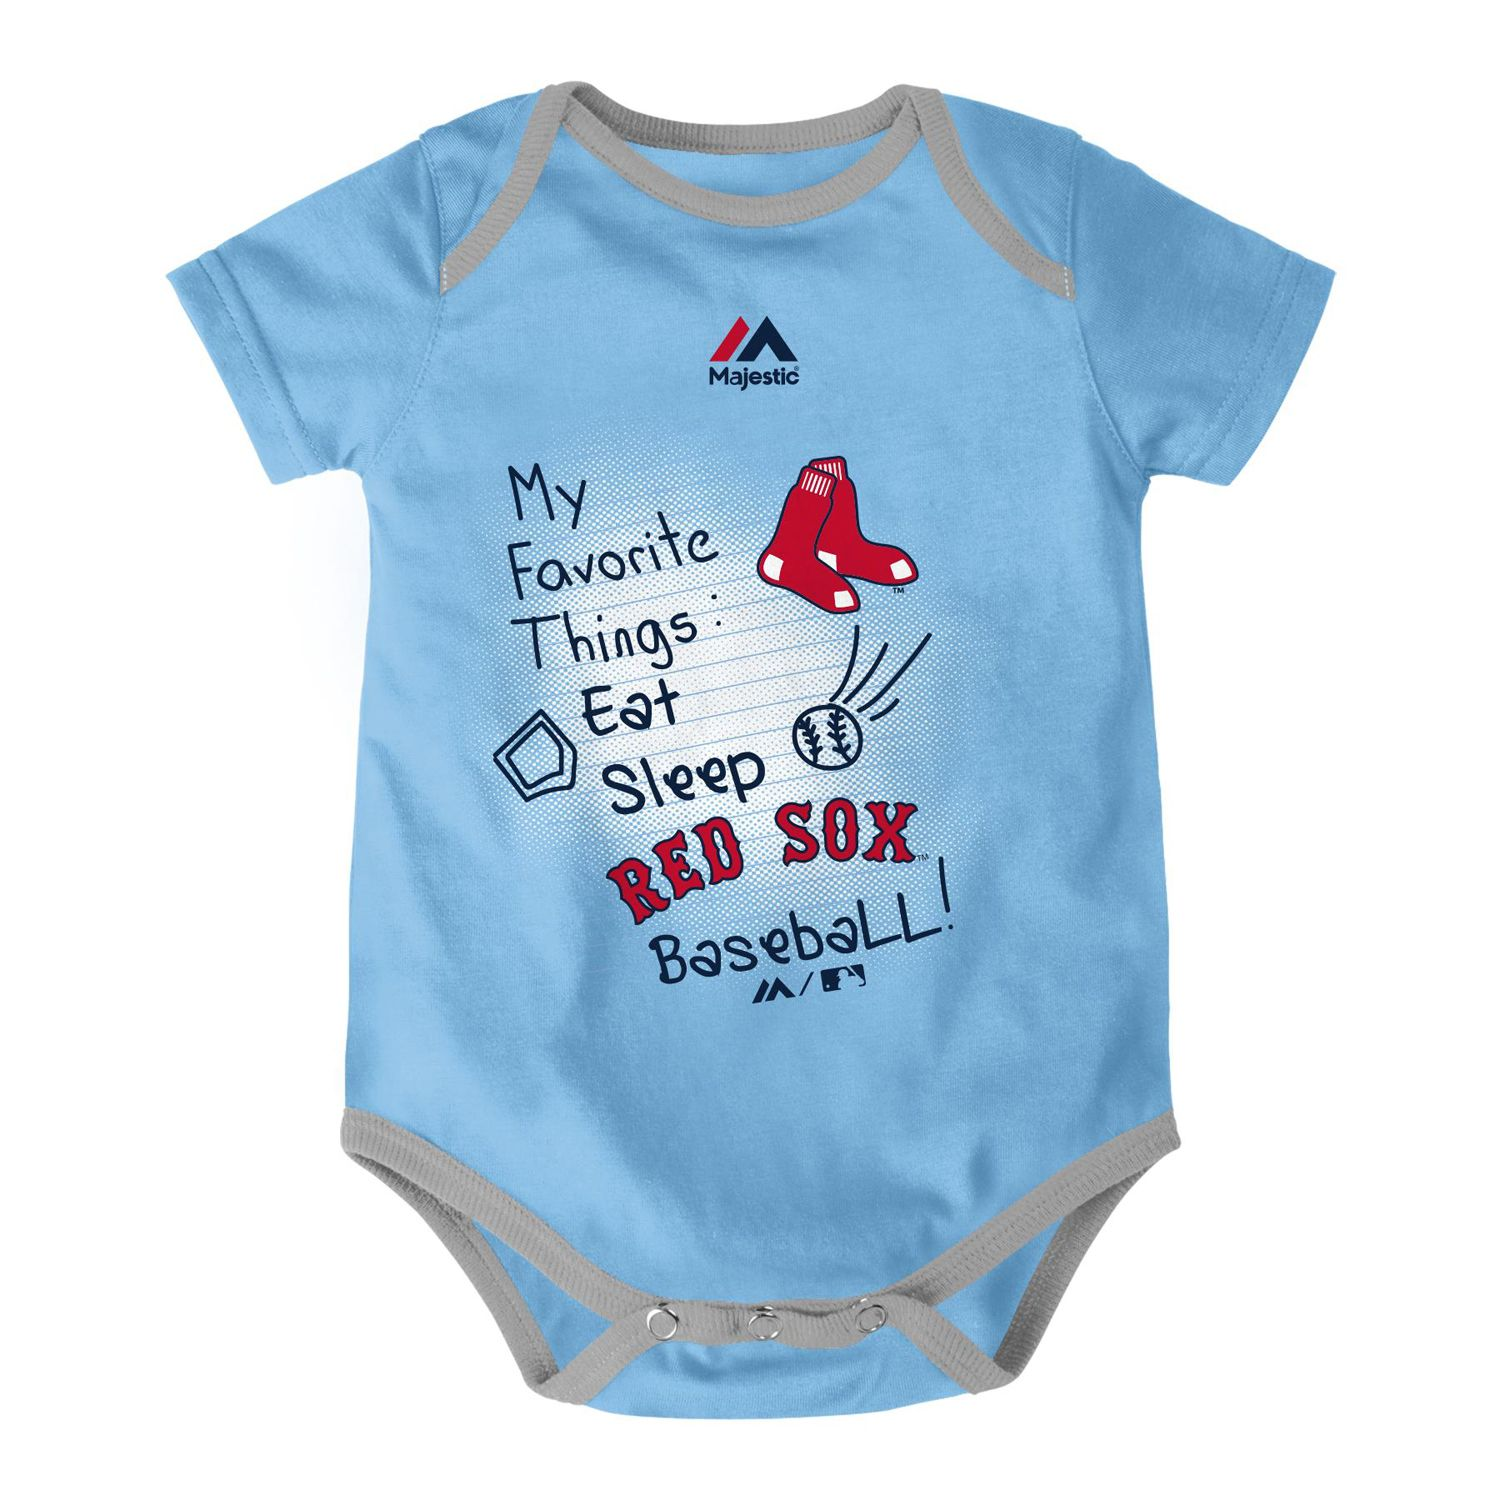 Boston Red Sox Baby Clothing